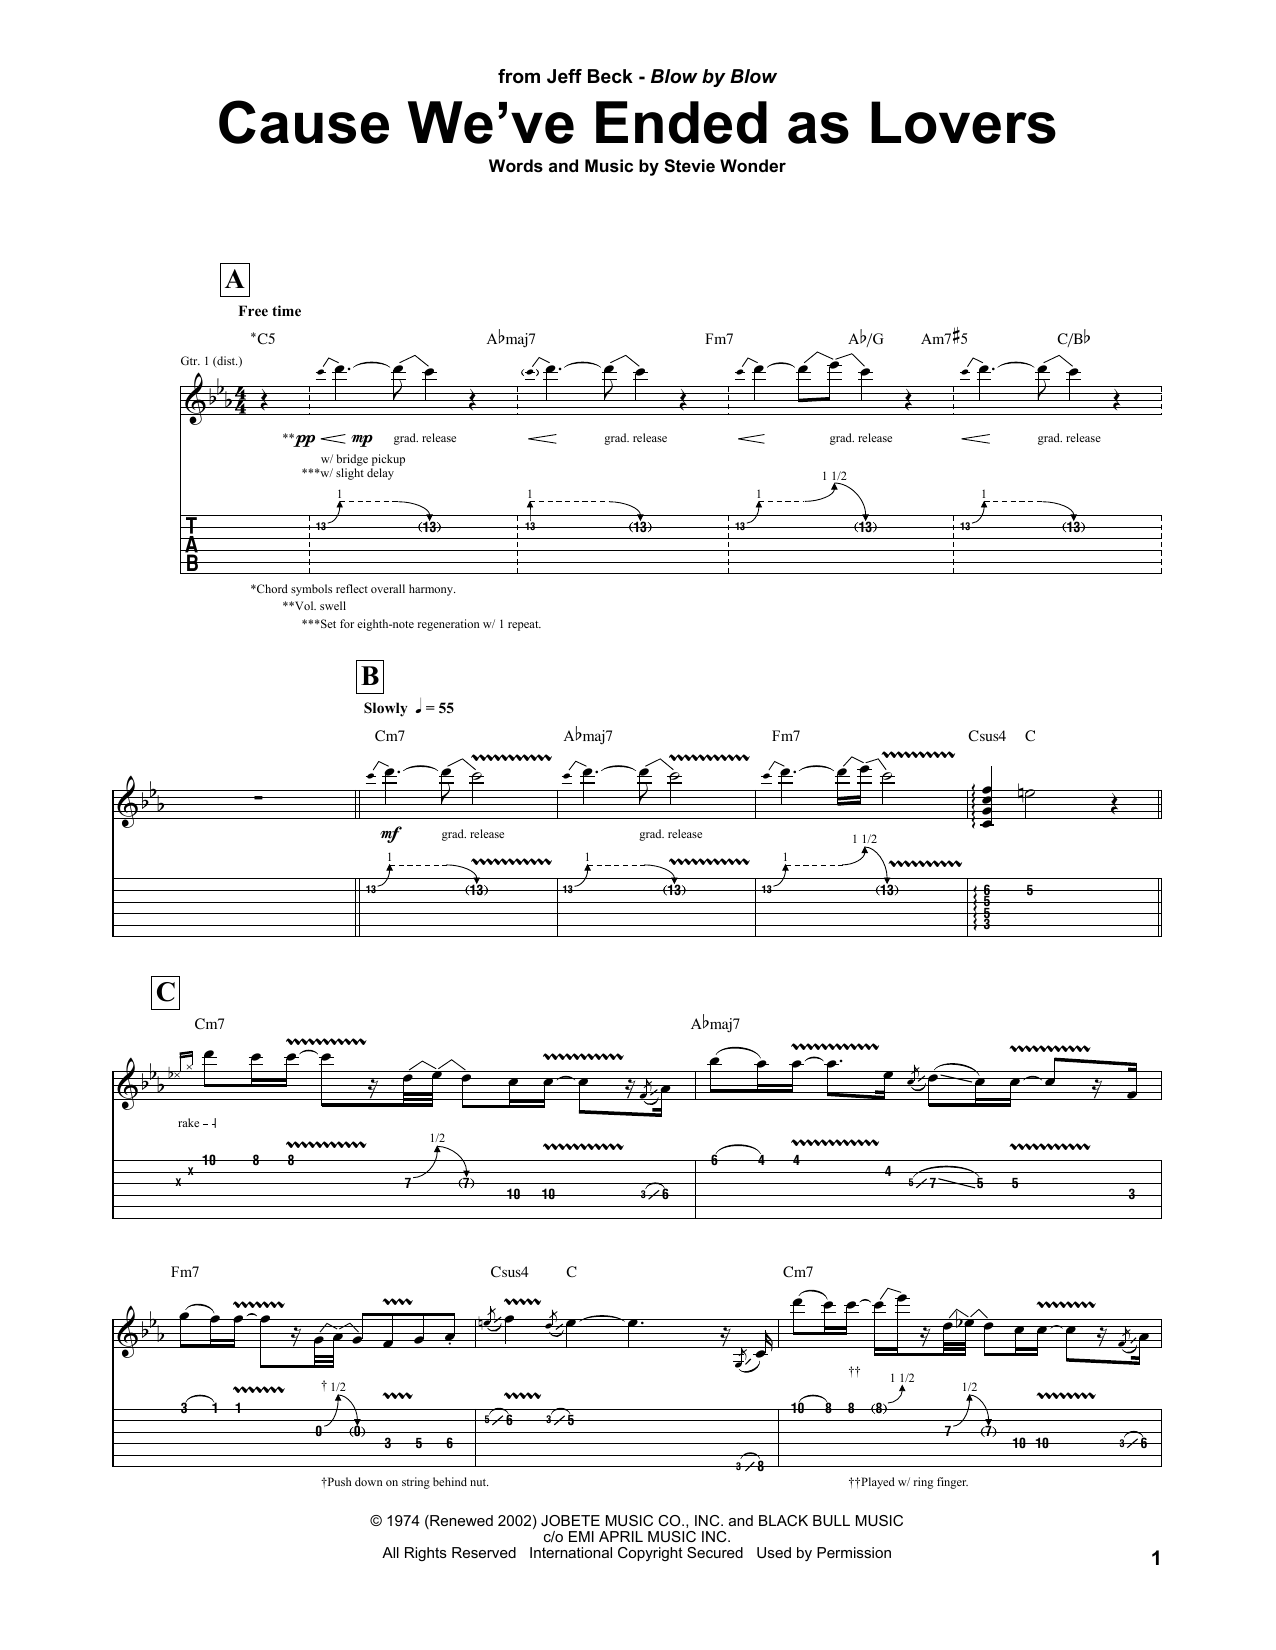 Jeff Beck Cause We've Ended As Lovers sheet music notes and chords. Download Printable PDF.